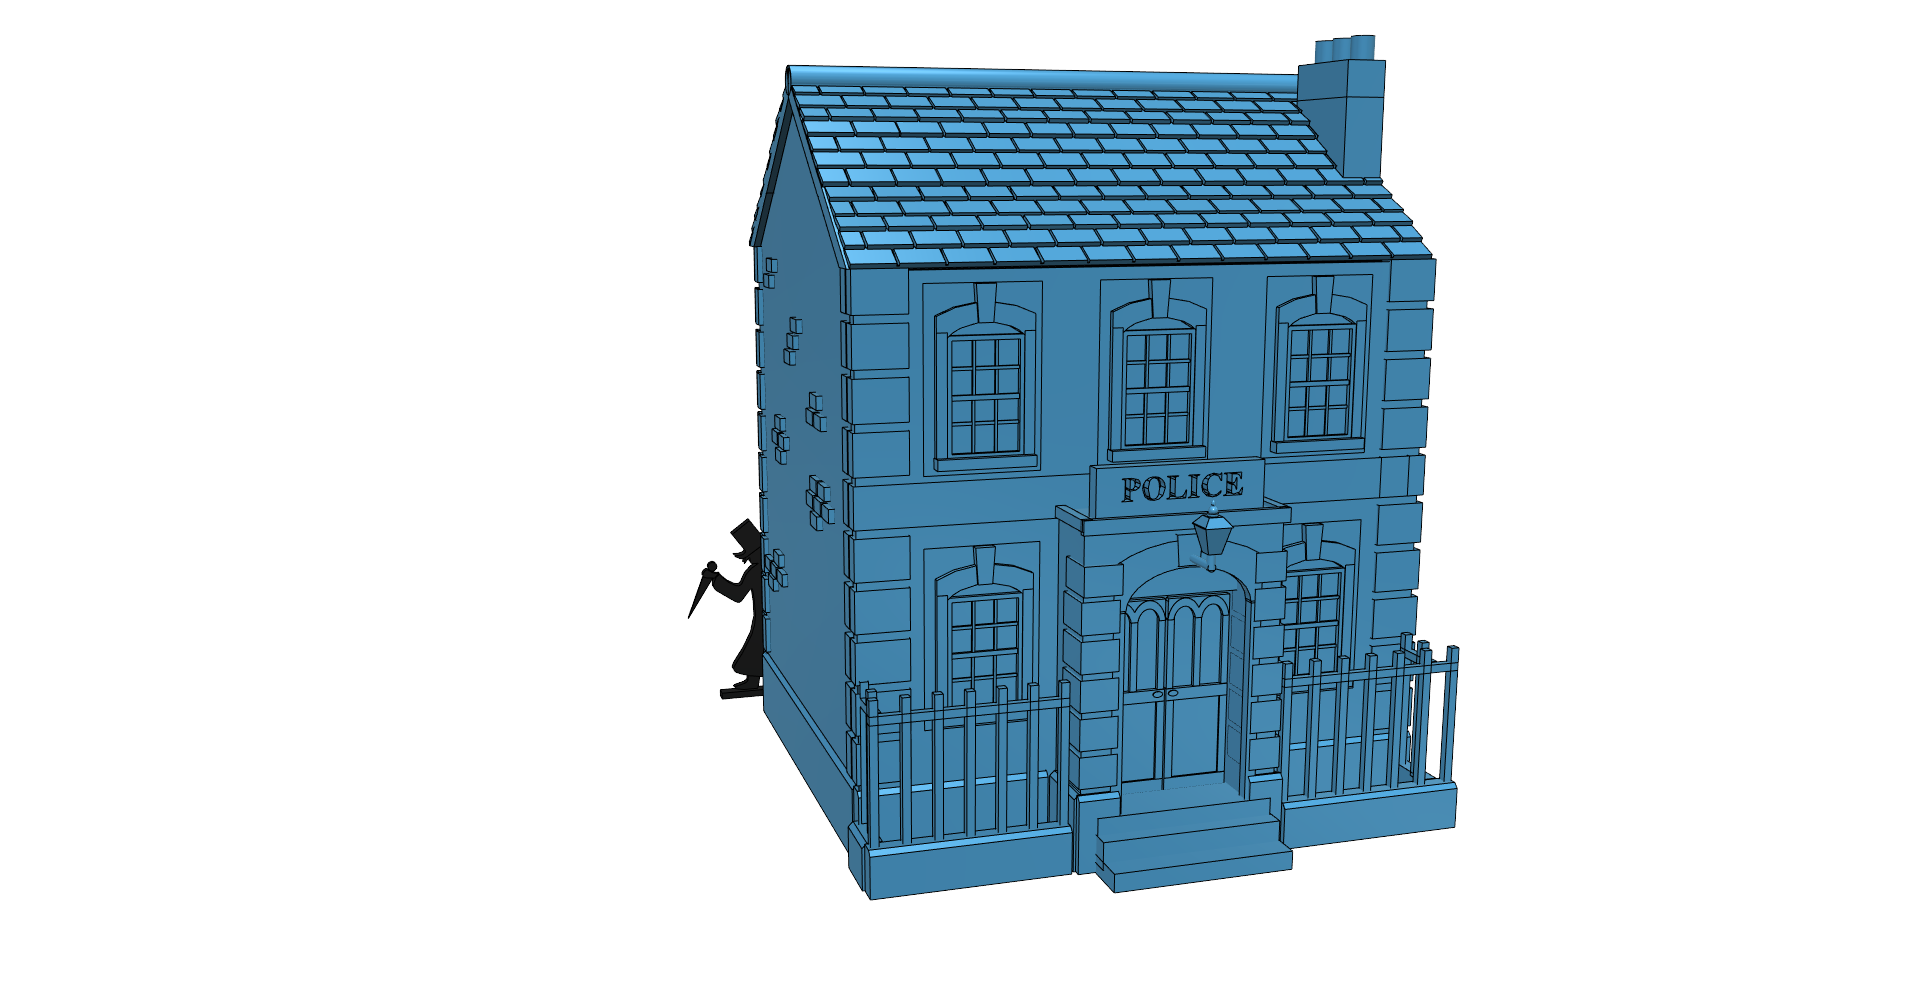 nick2_fr.png Download free STL file Ripper's London - The Nick • Design to 3D print, Earsling